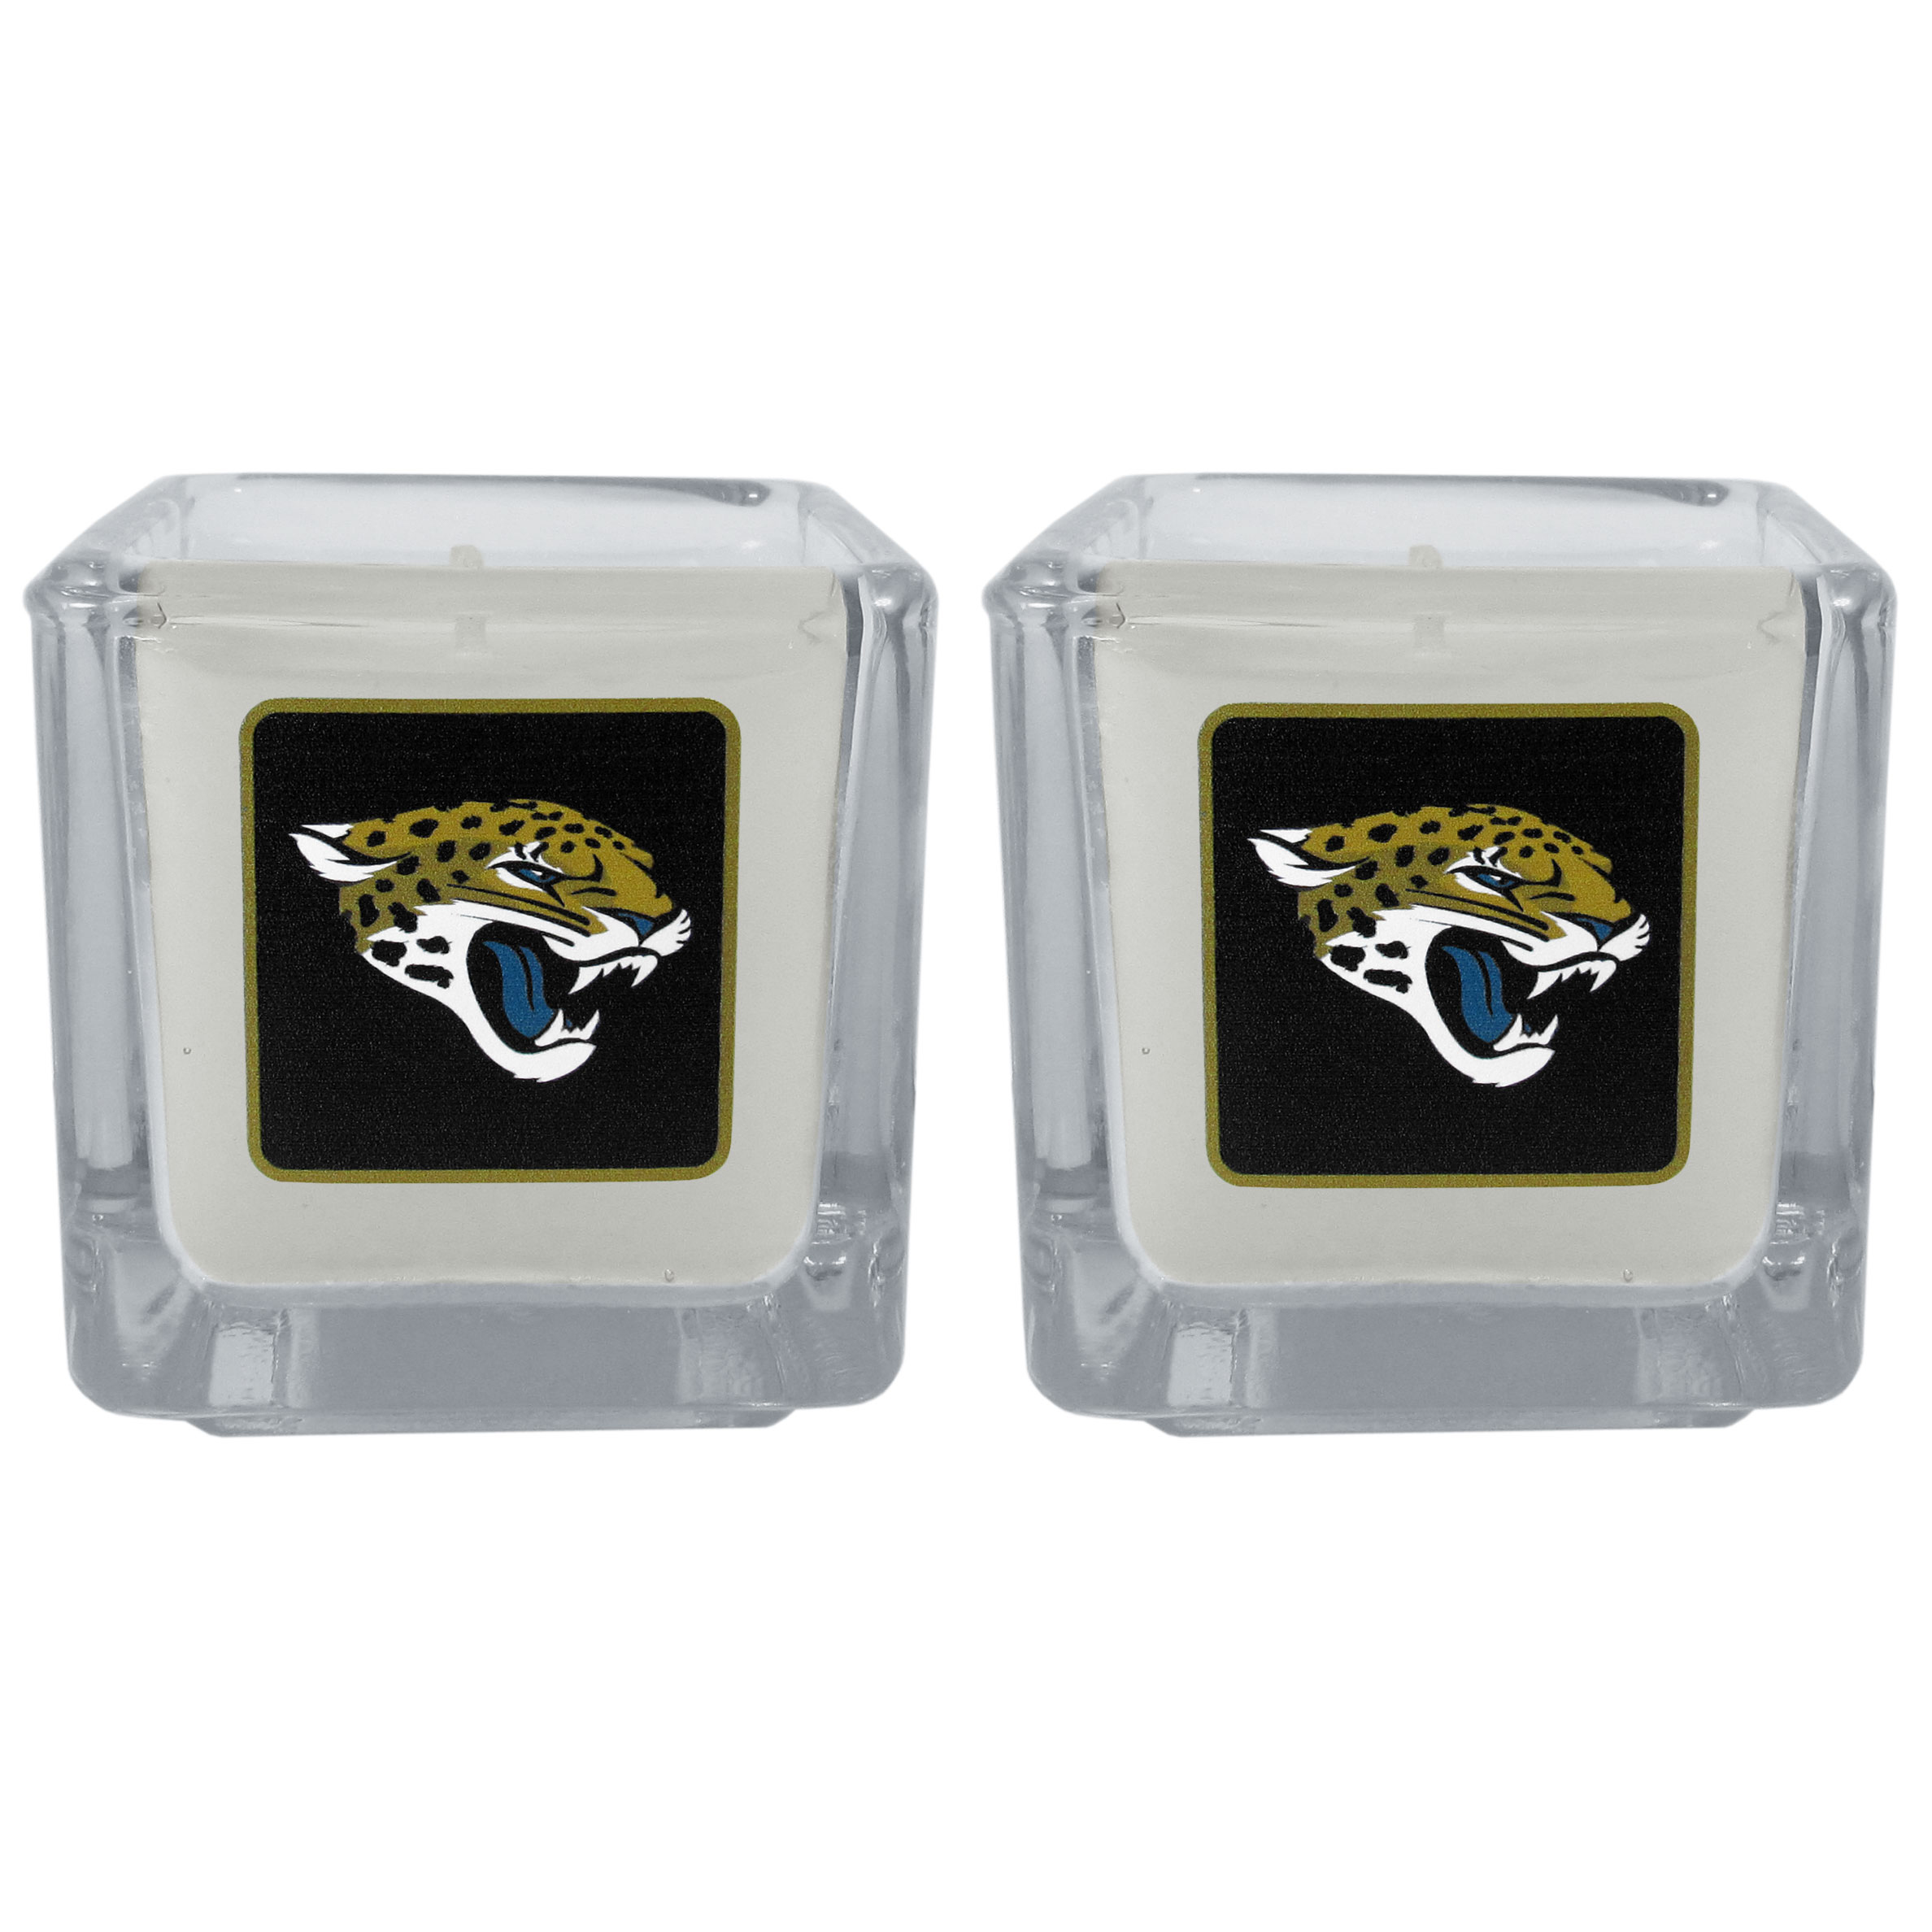 Jacksonville Jaguars Graphics Candle Set - Our candle set features 2 lightly vanilla scented candles with the Jacksonville Jaguars logo expertly printed on front. The candles are 2 inches tall in the votive style.